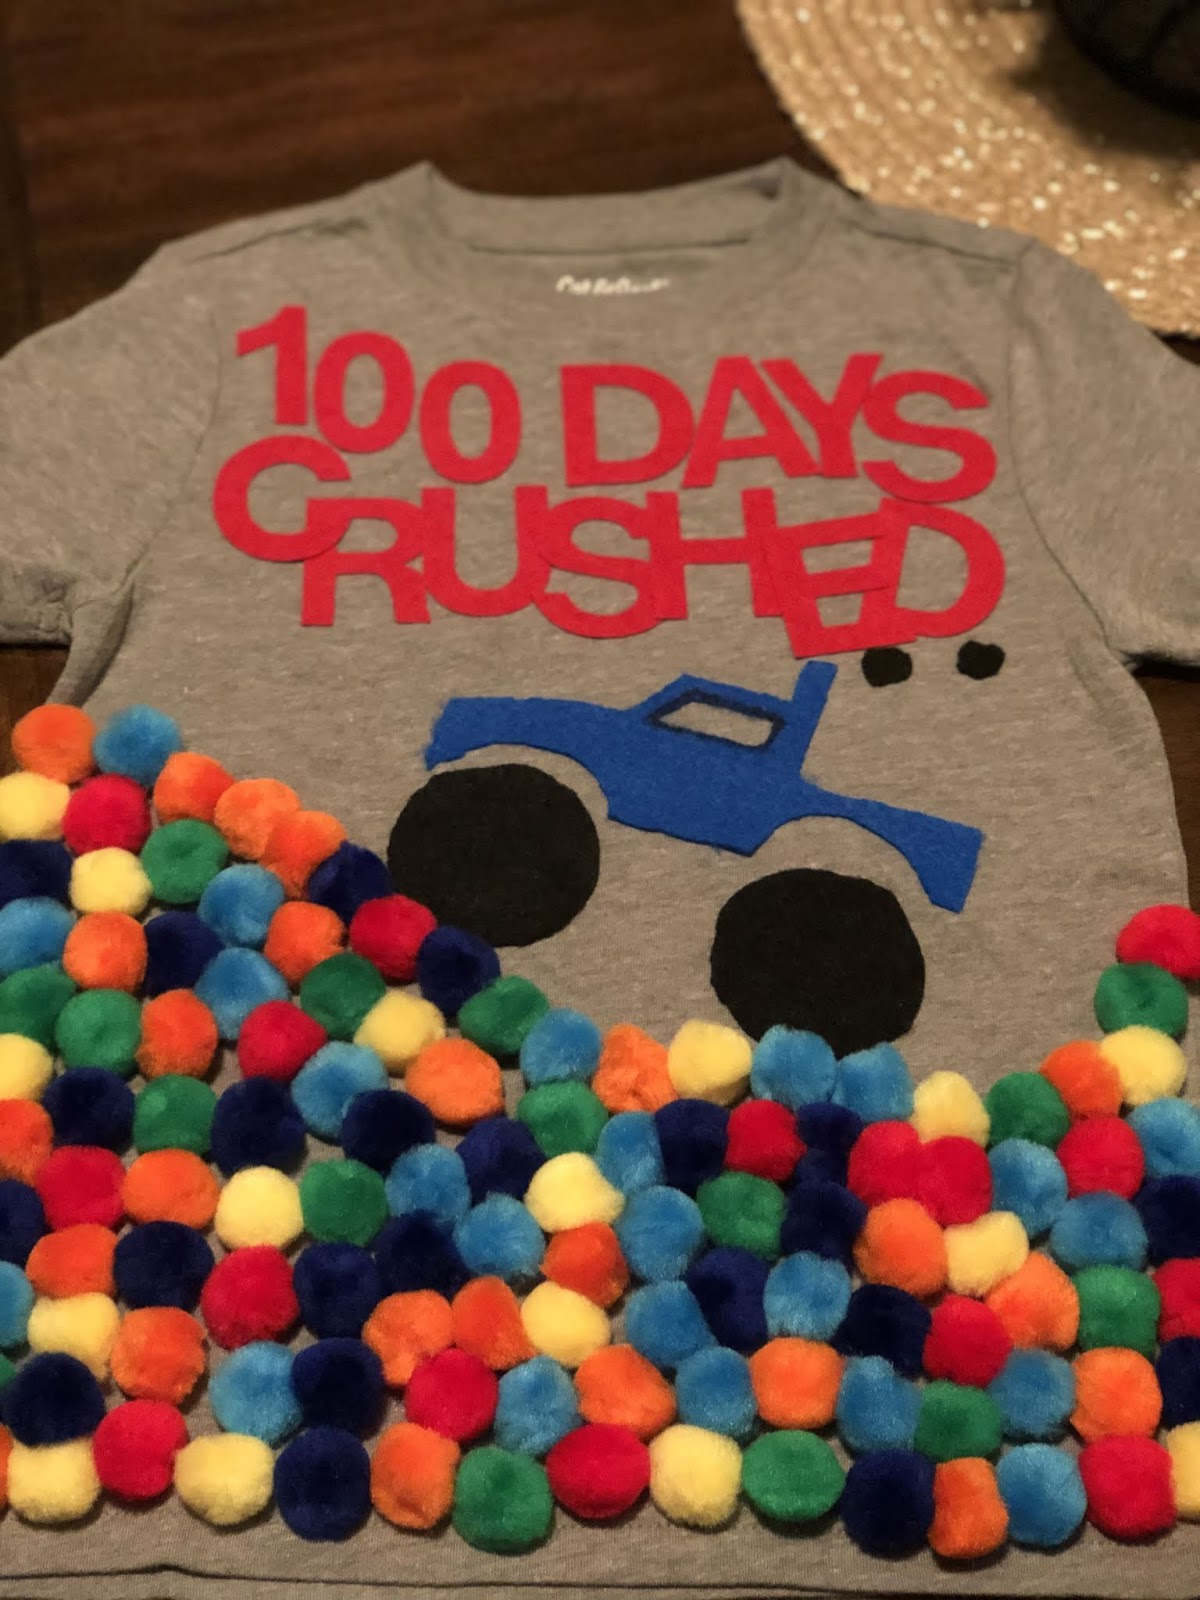 Monster Truck 100 Days of School Shirt